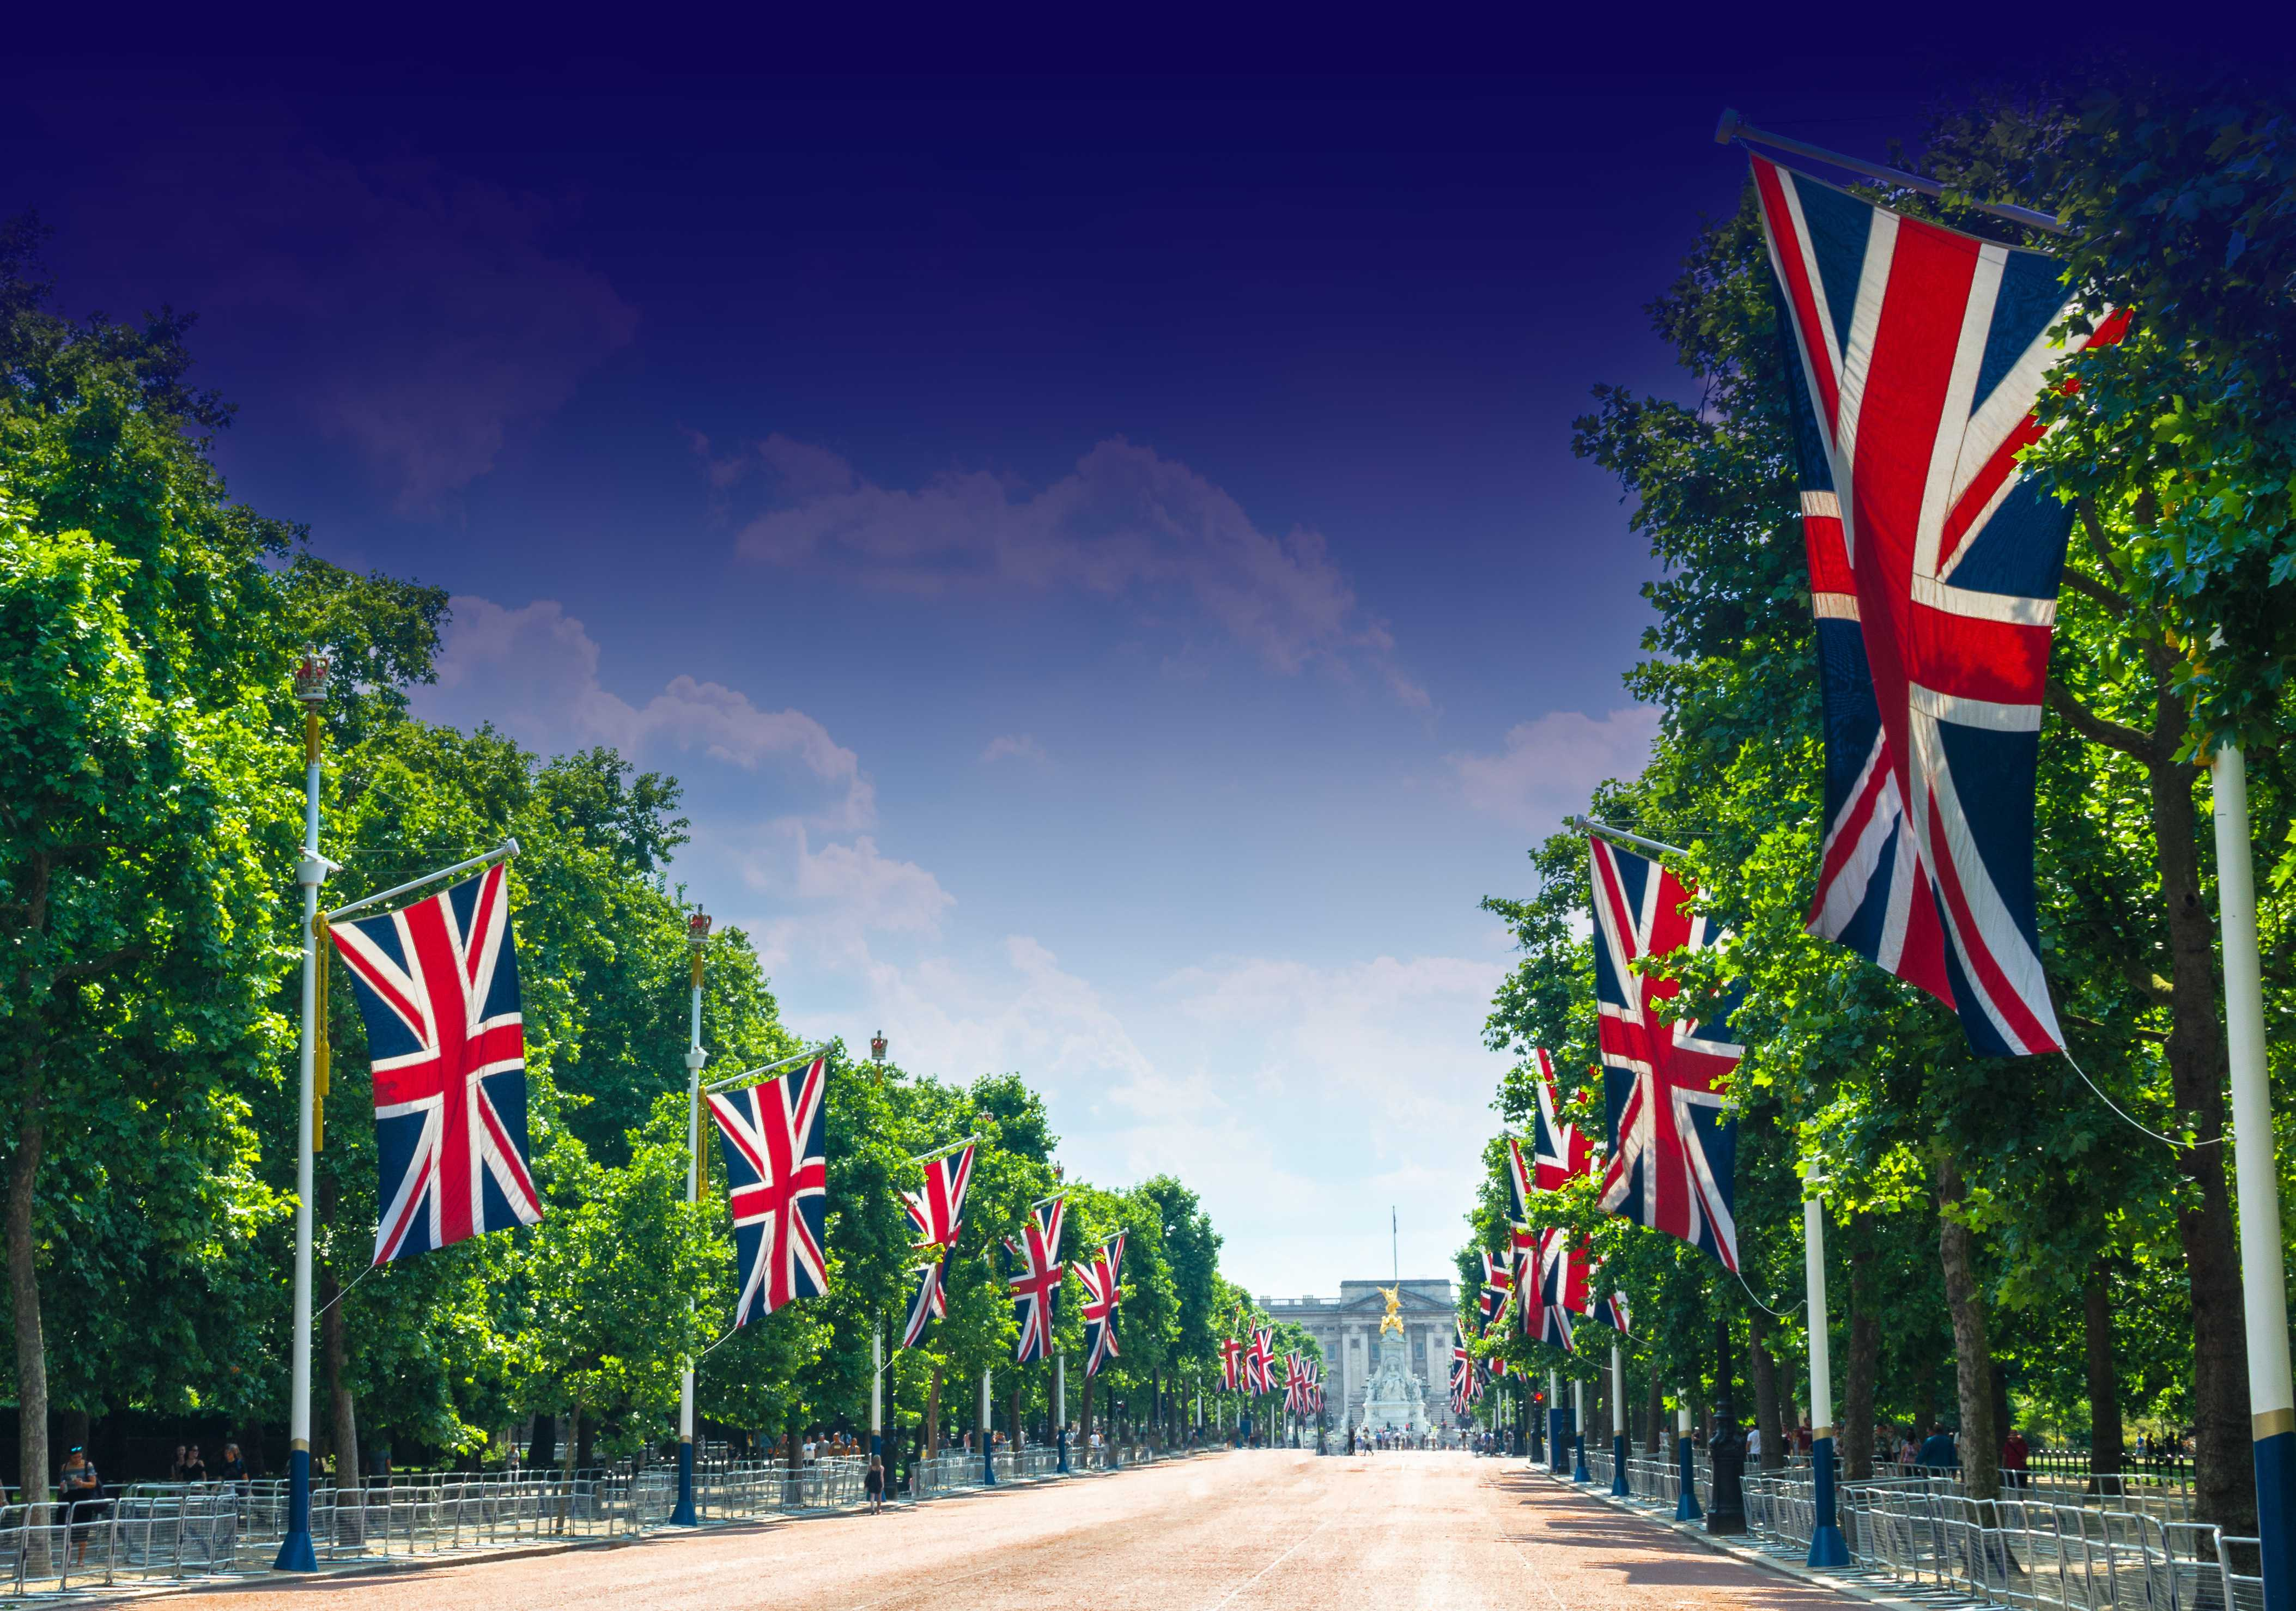 Pall Mall British Flags